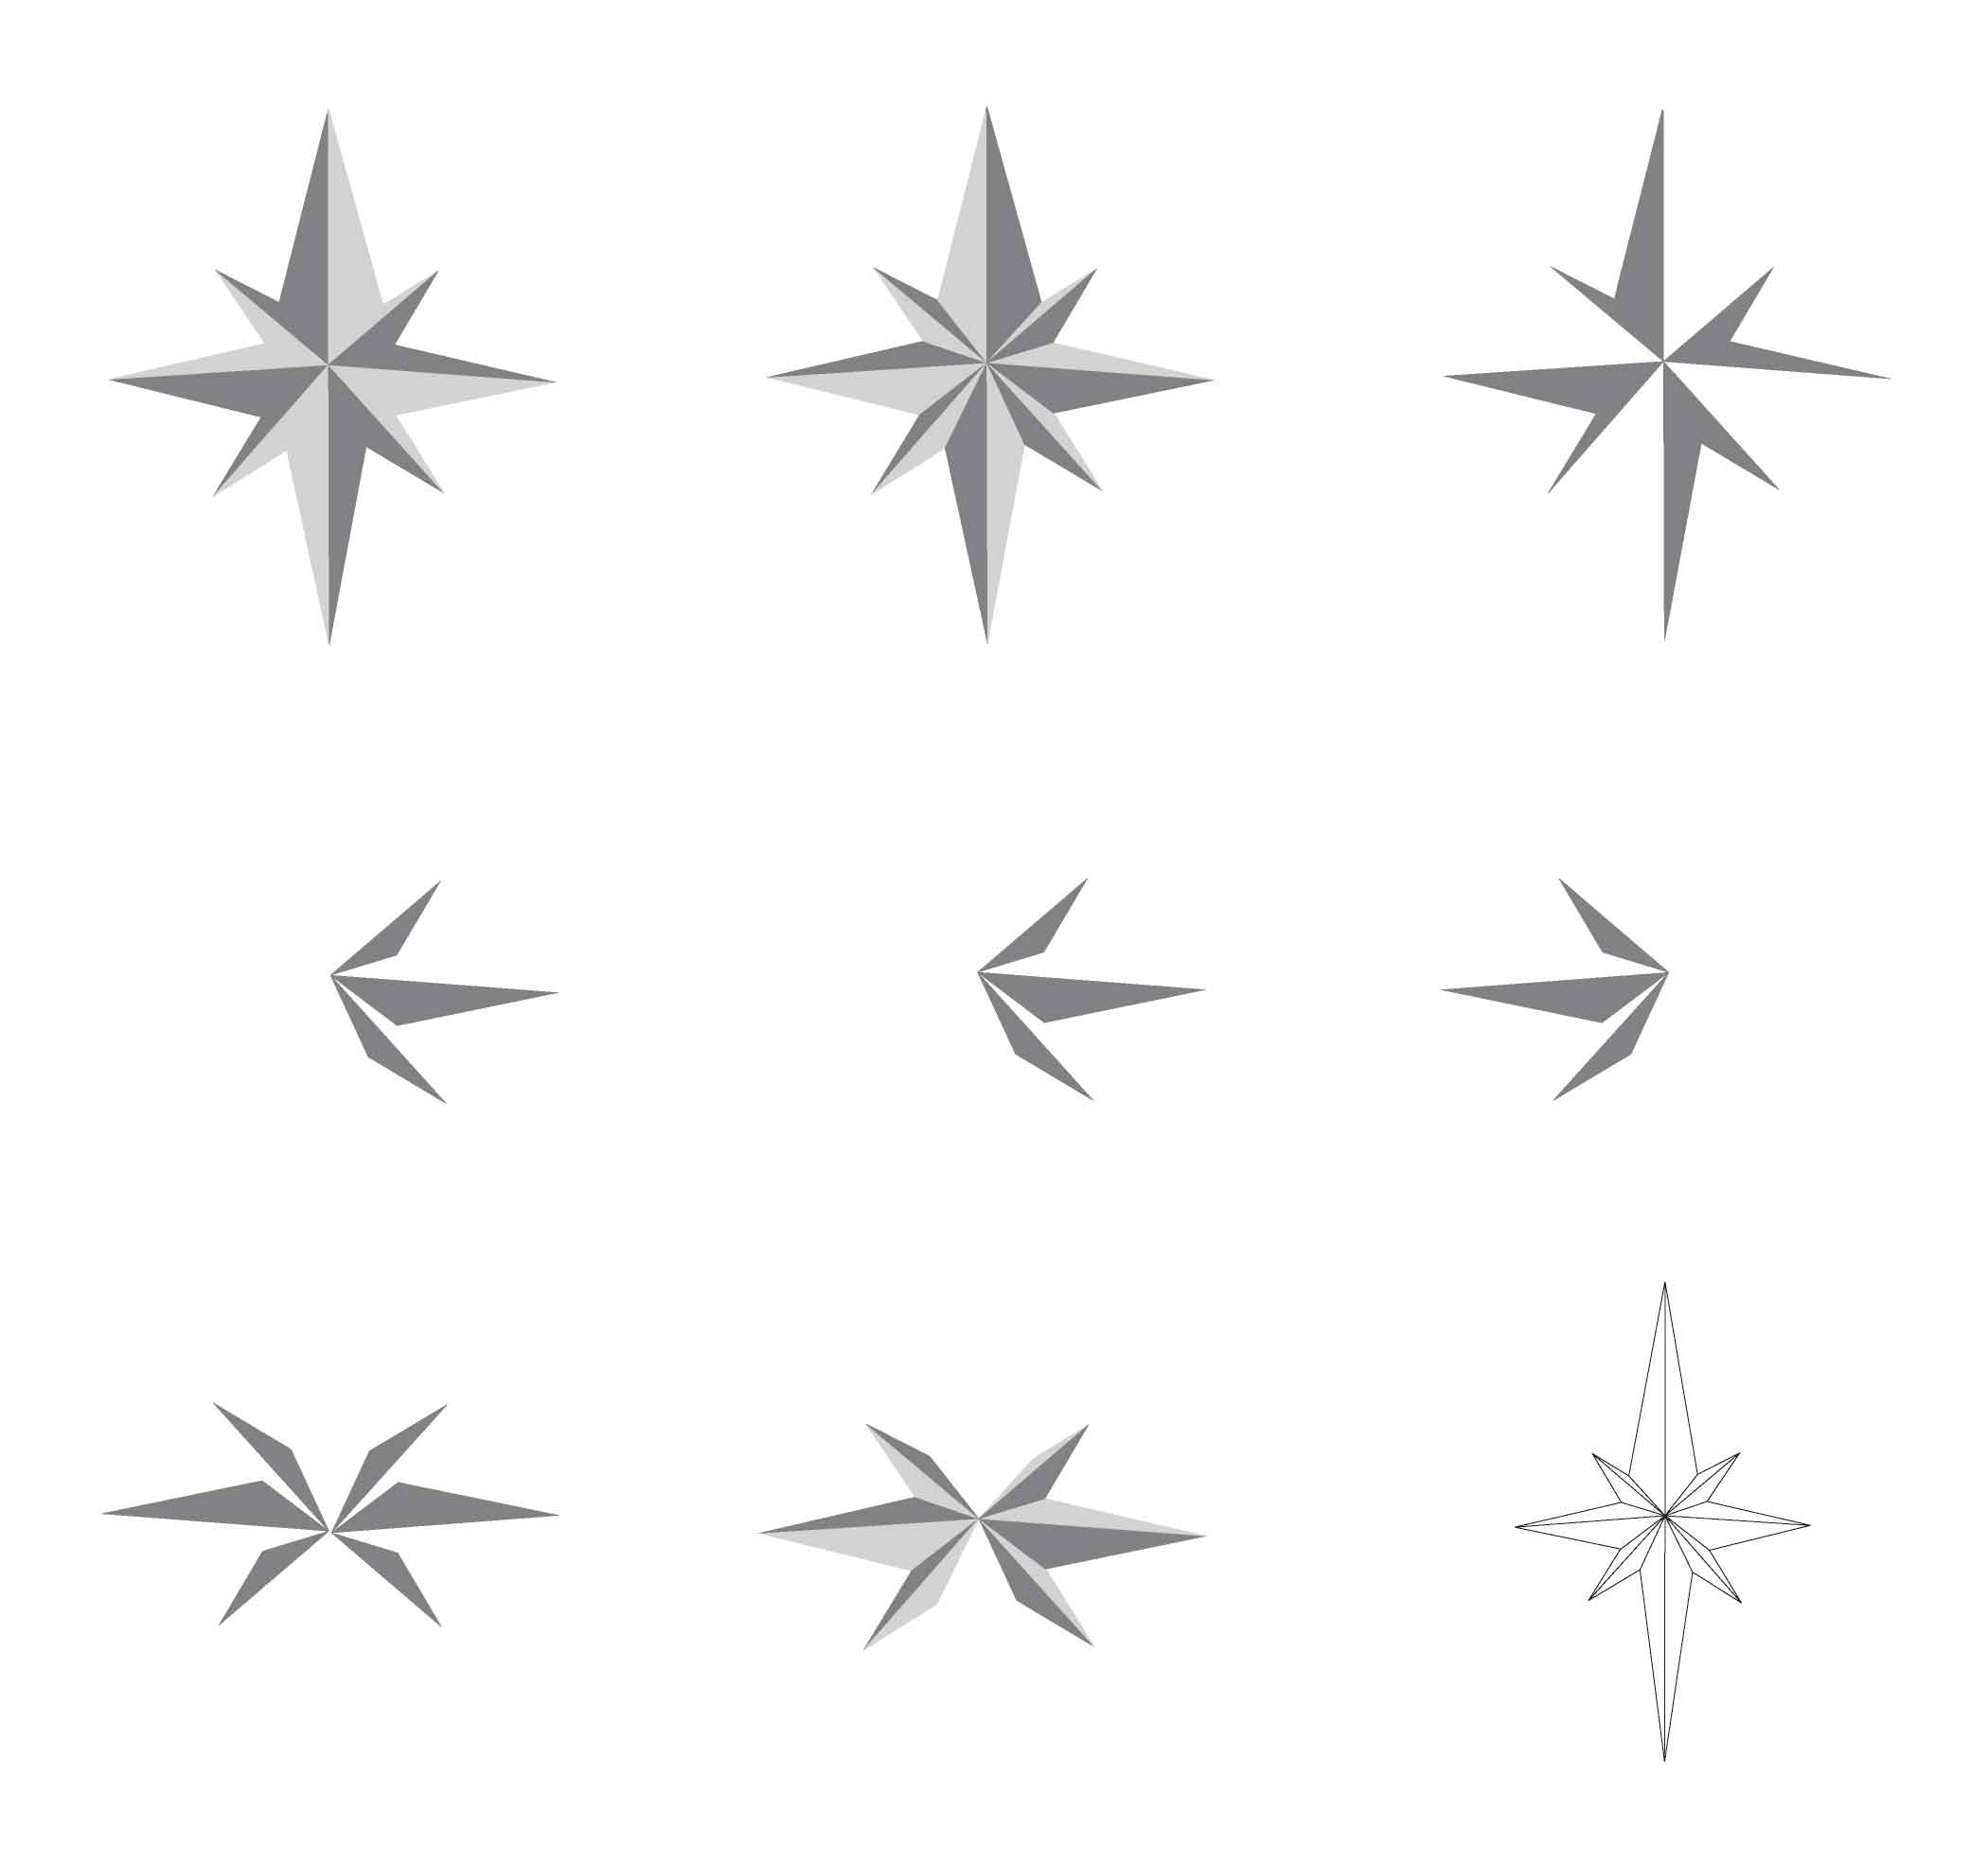 Form exploration - Crystal Star